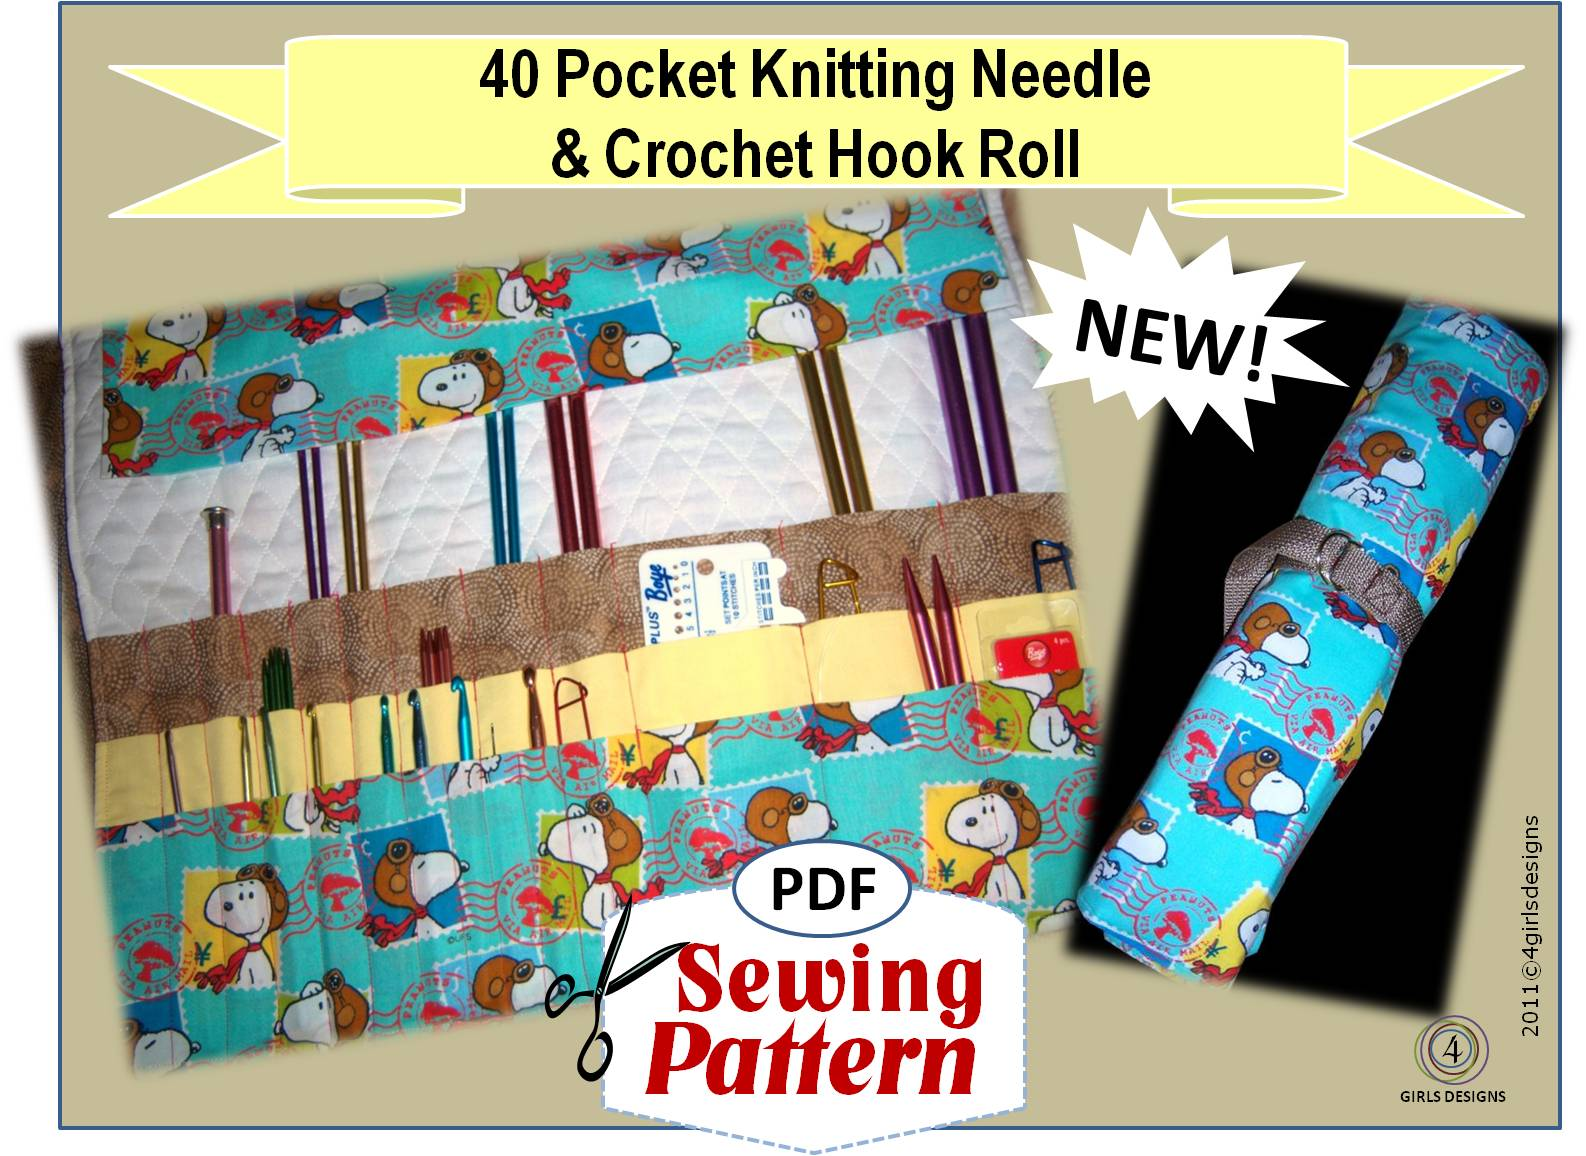 4 Girls Designs: NEW Sewing Patterns for Knitters, Crochet Artists, Painters,...